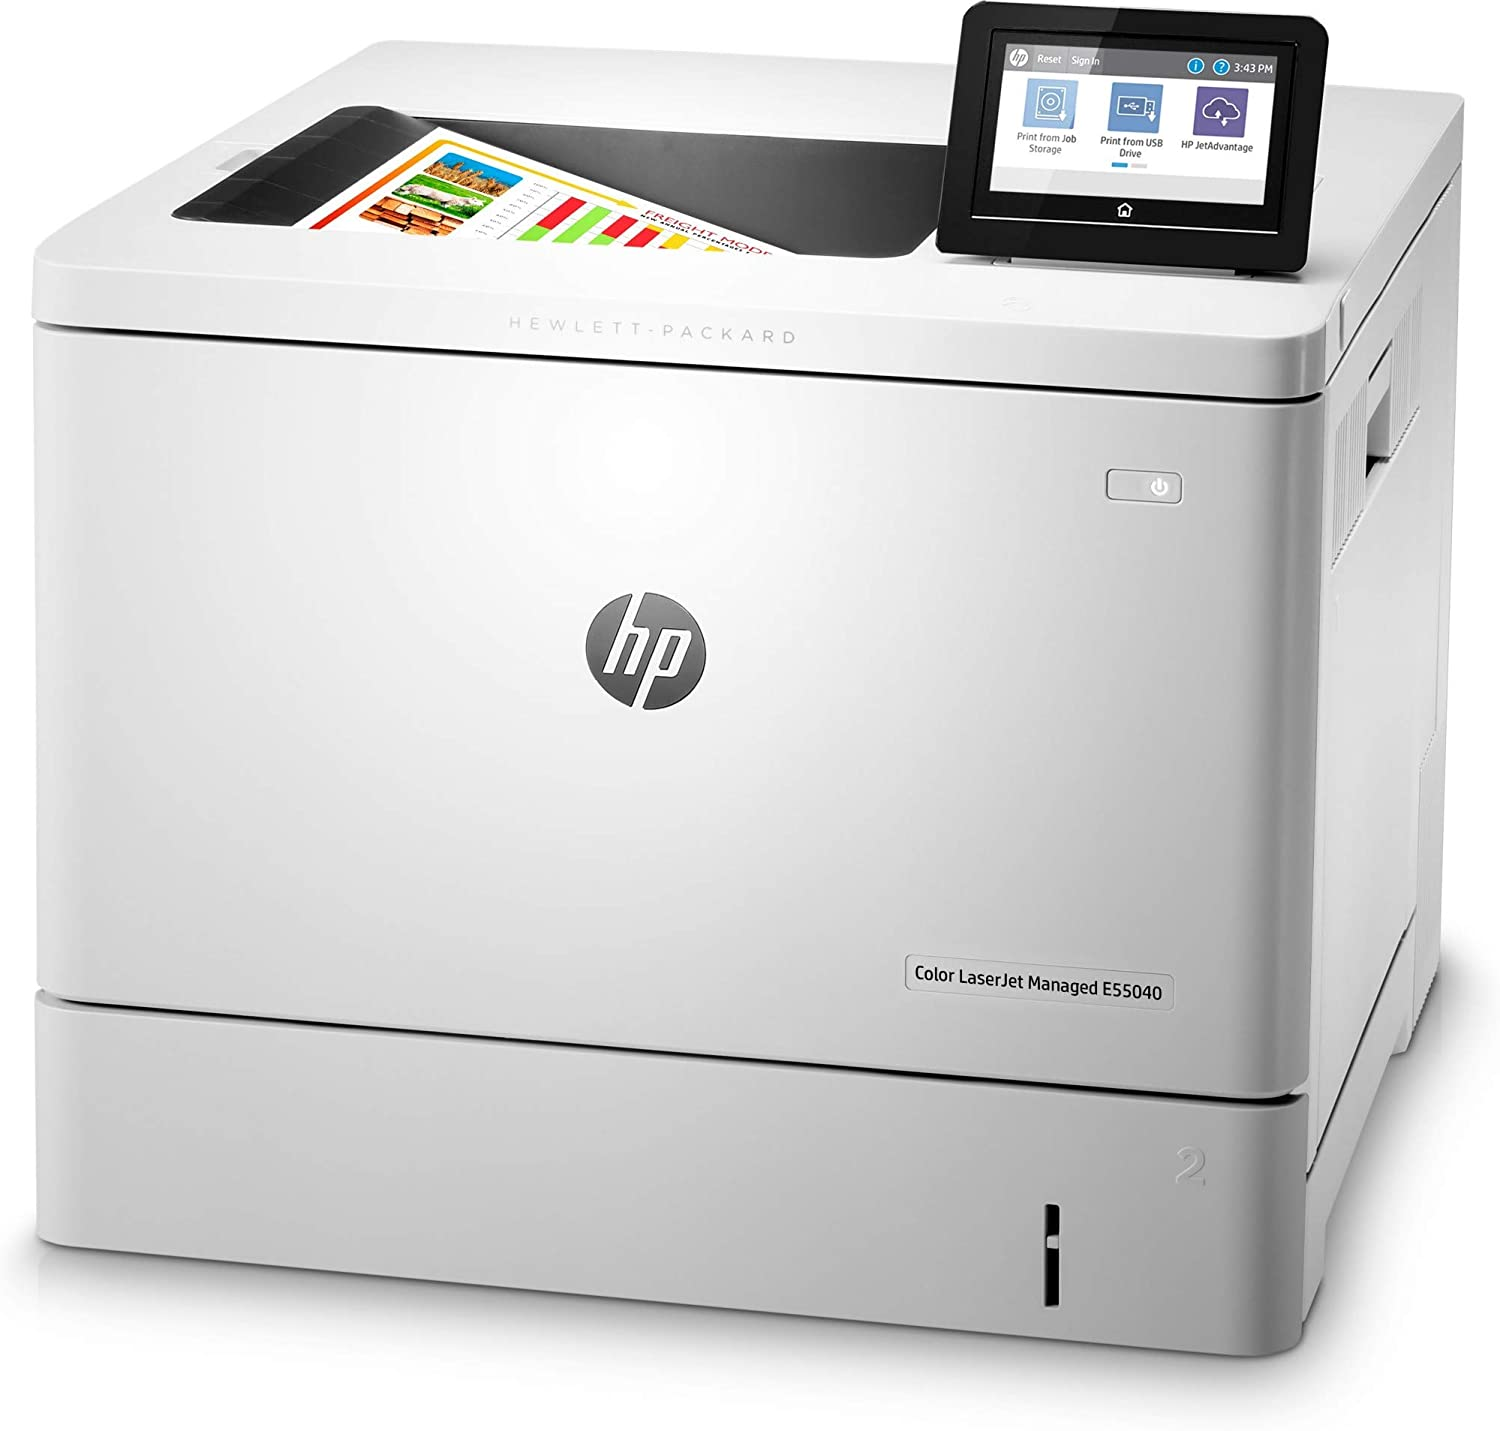 HP Color Laserjet Managed E55040dw - Impresora láser: Amazon.es ...